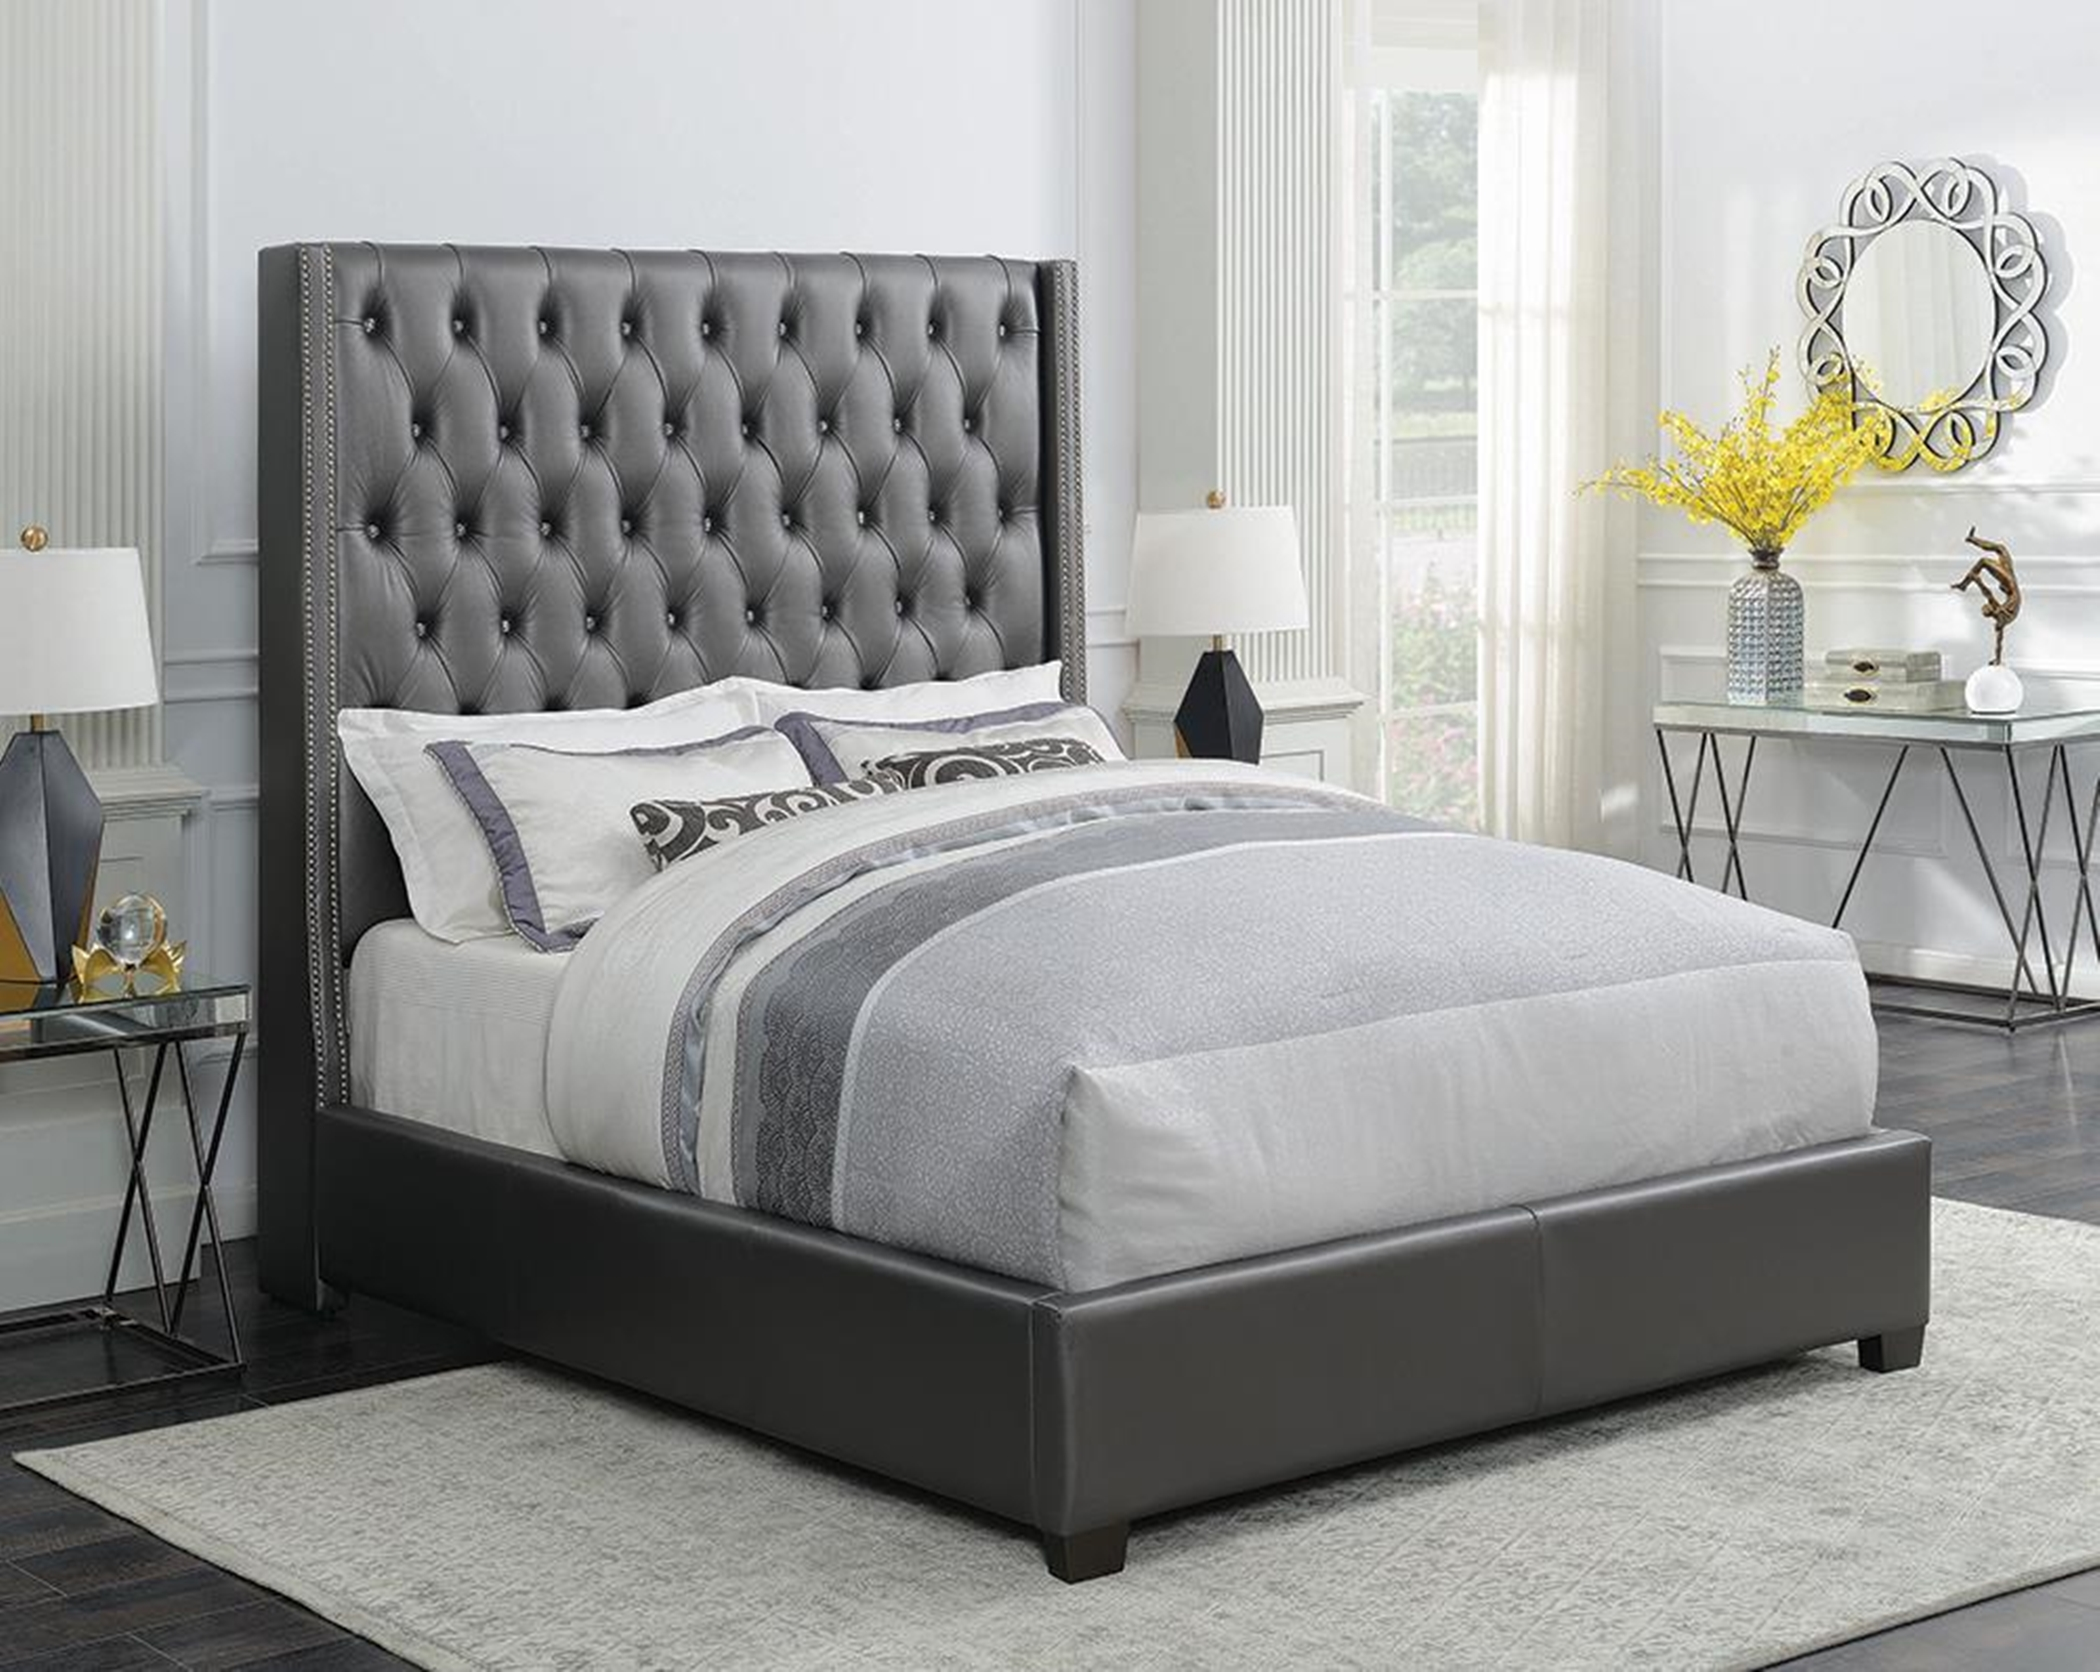 Clifton Metallic C King Bed